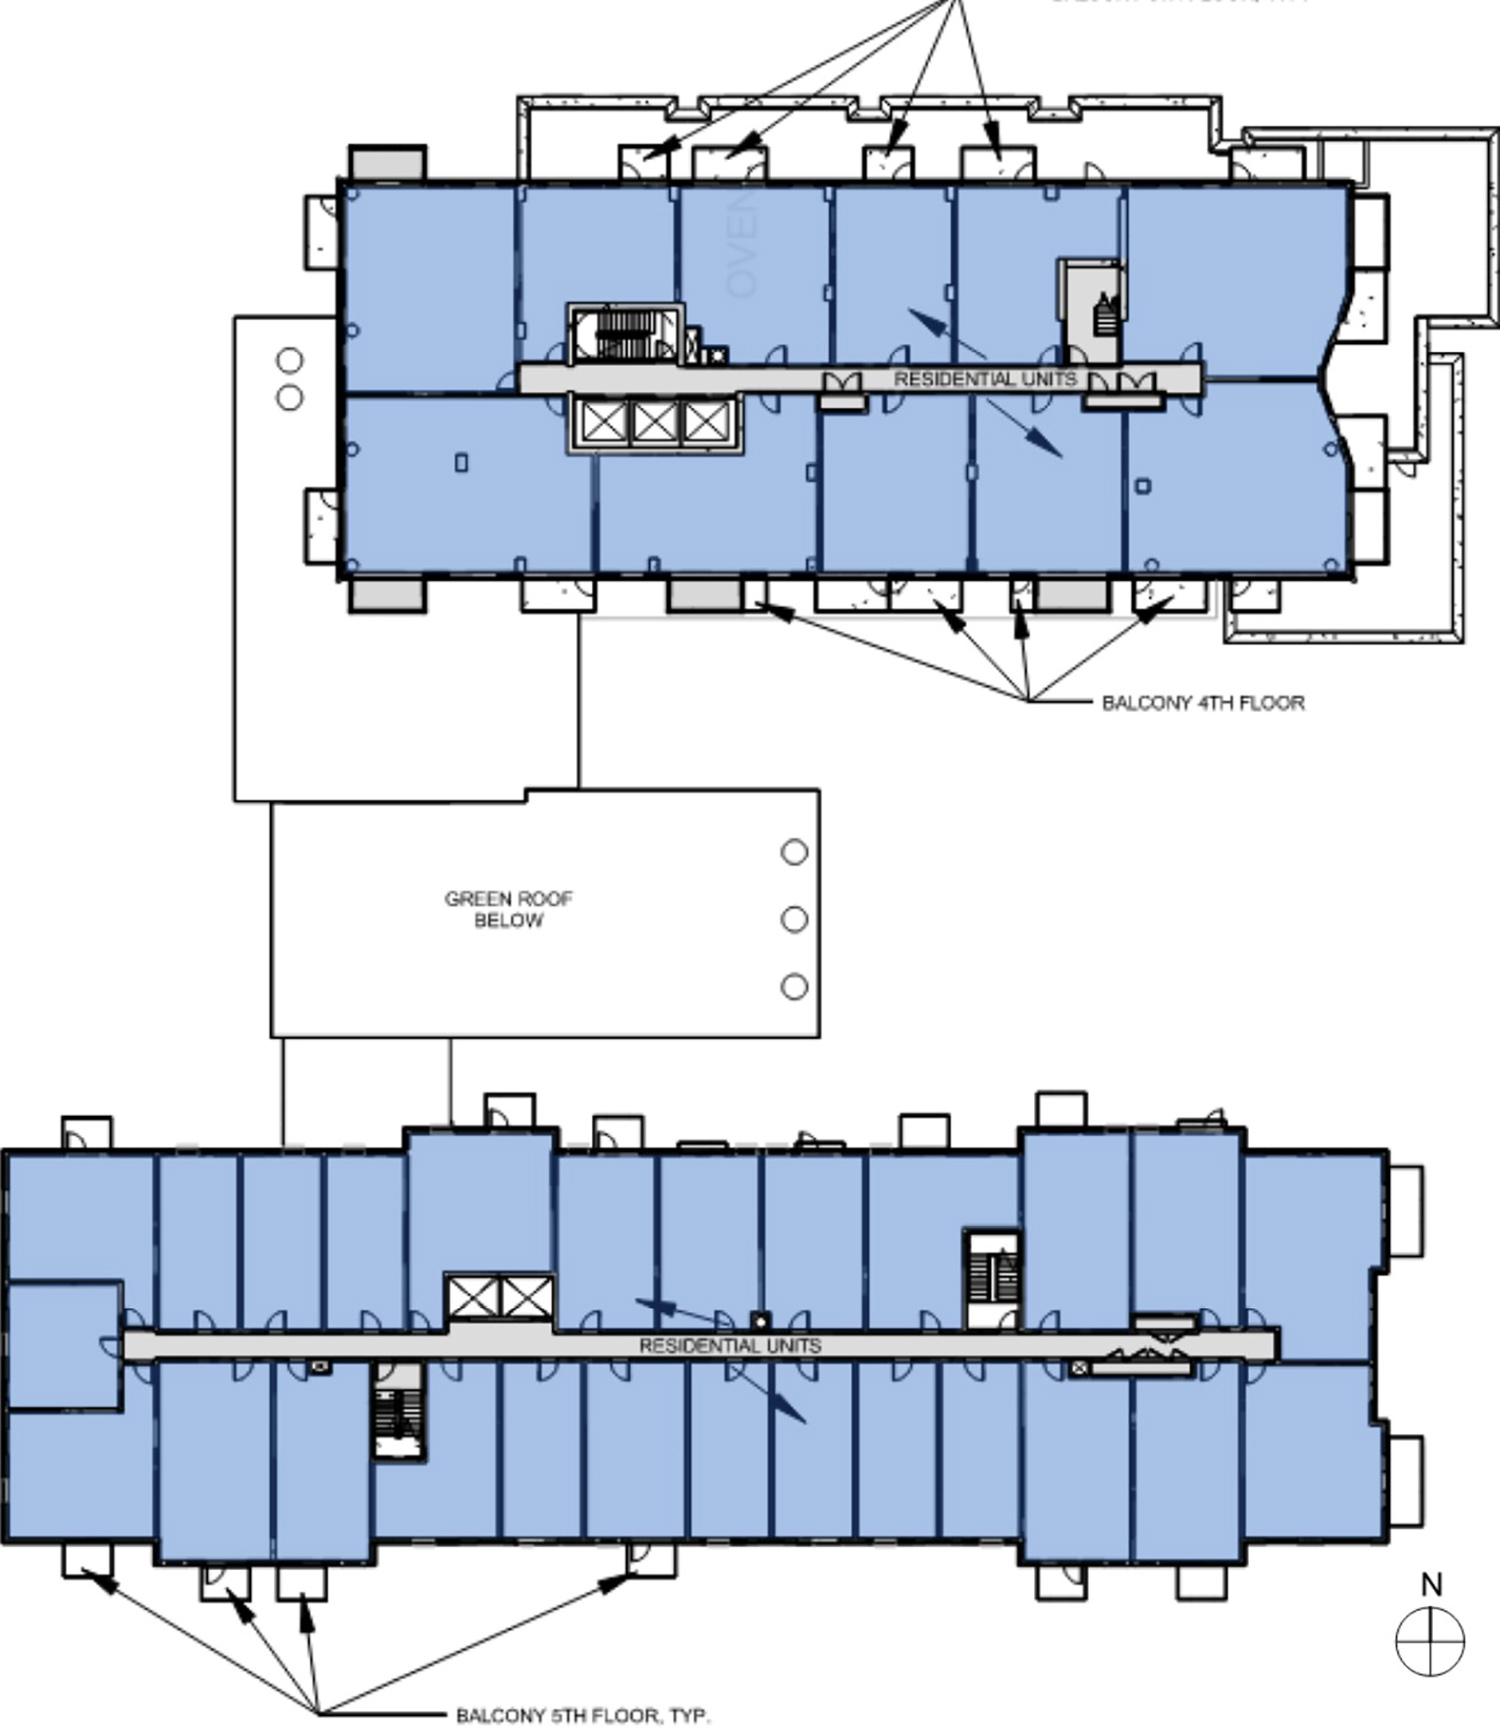 Typical Residential Floor Plan for 3636 N Lake Shore Drive. Drawing by BKV Group